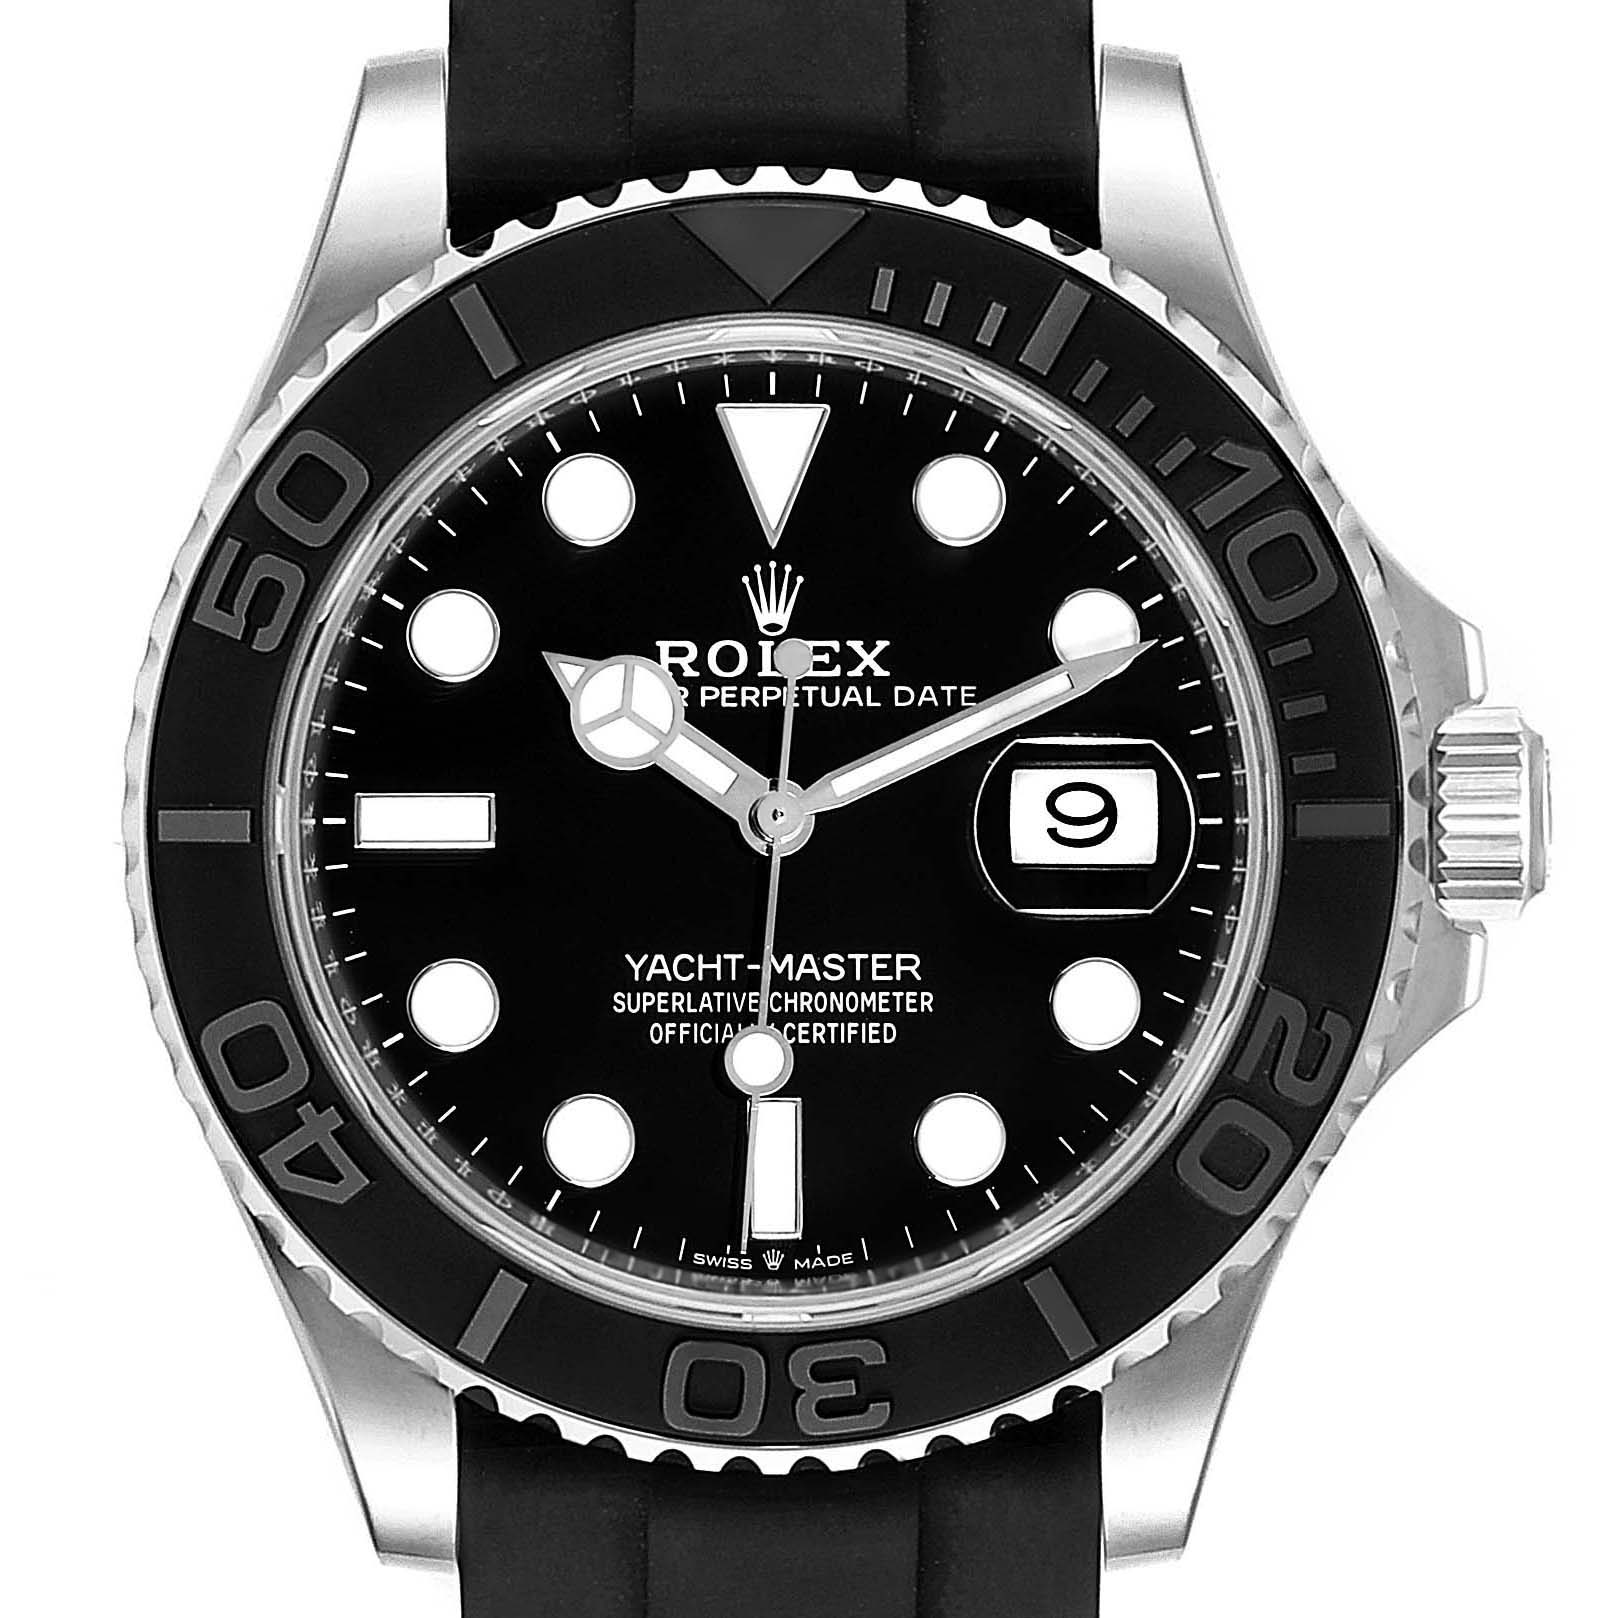 Rolex Yachtmaster White Gold Black Rubber Strap Watch 226659 Box Card